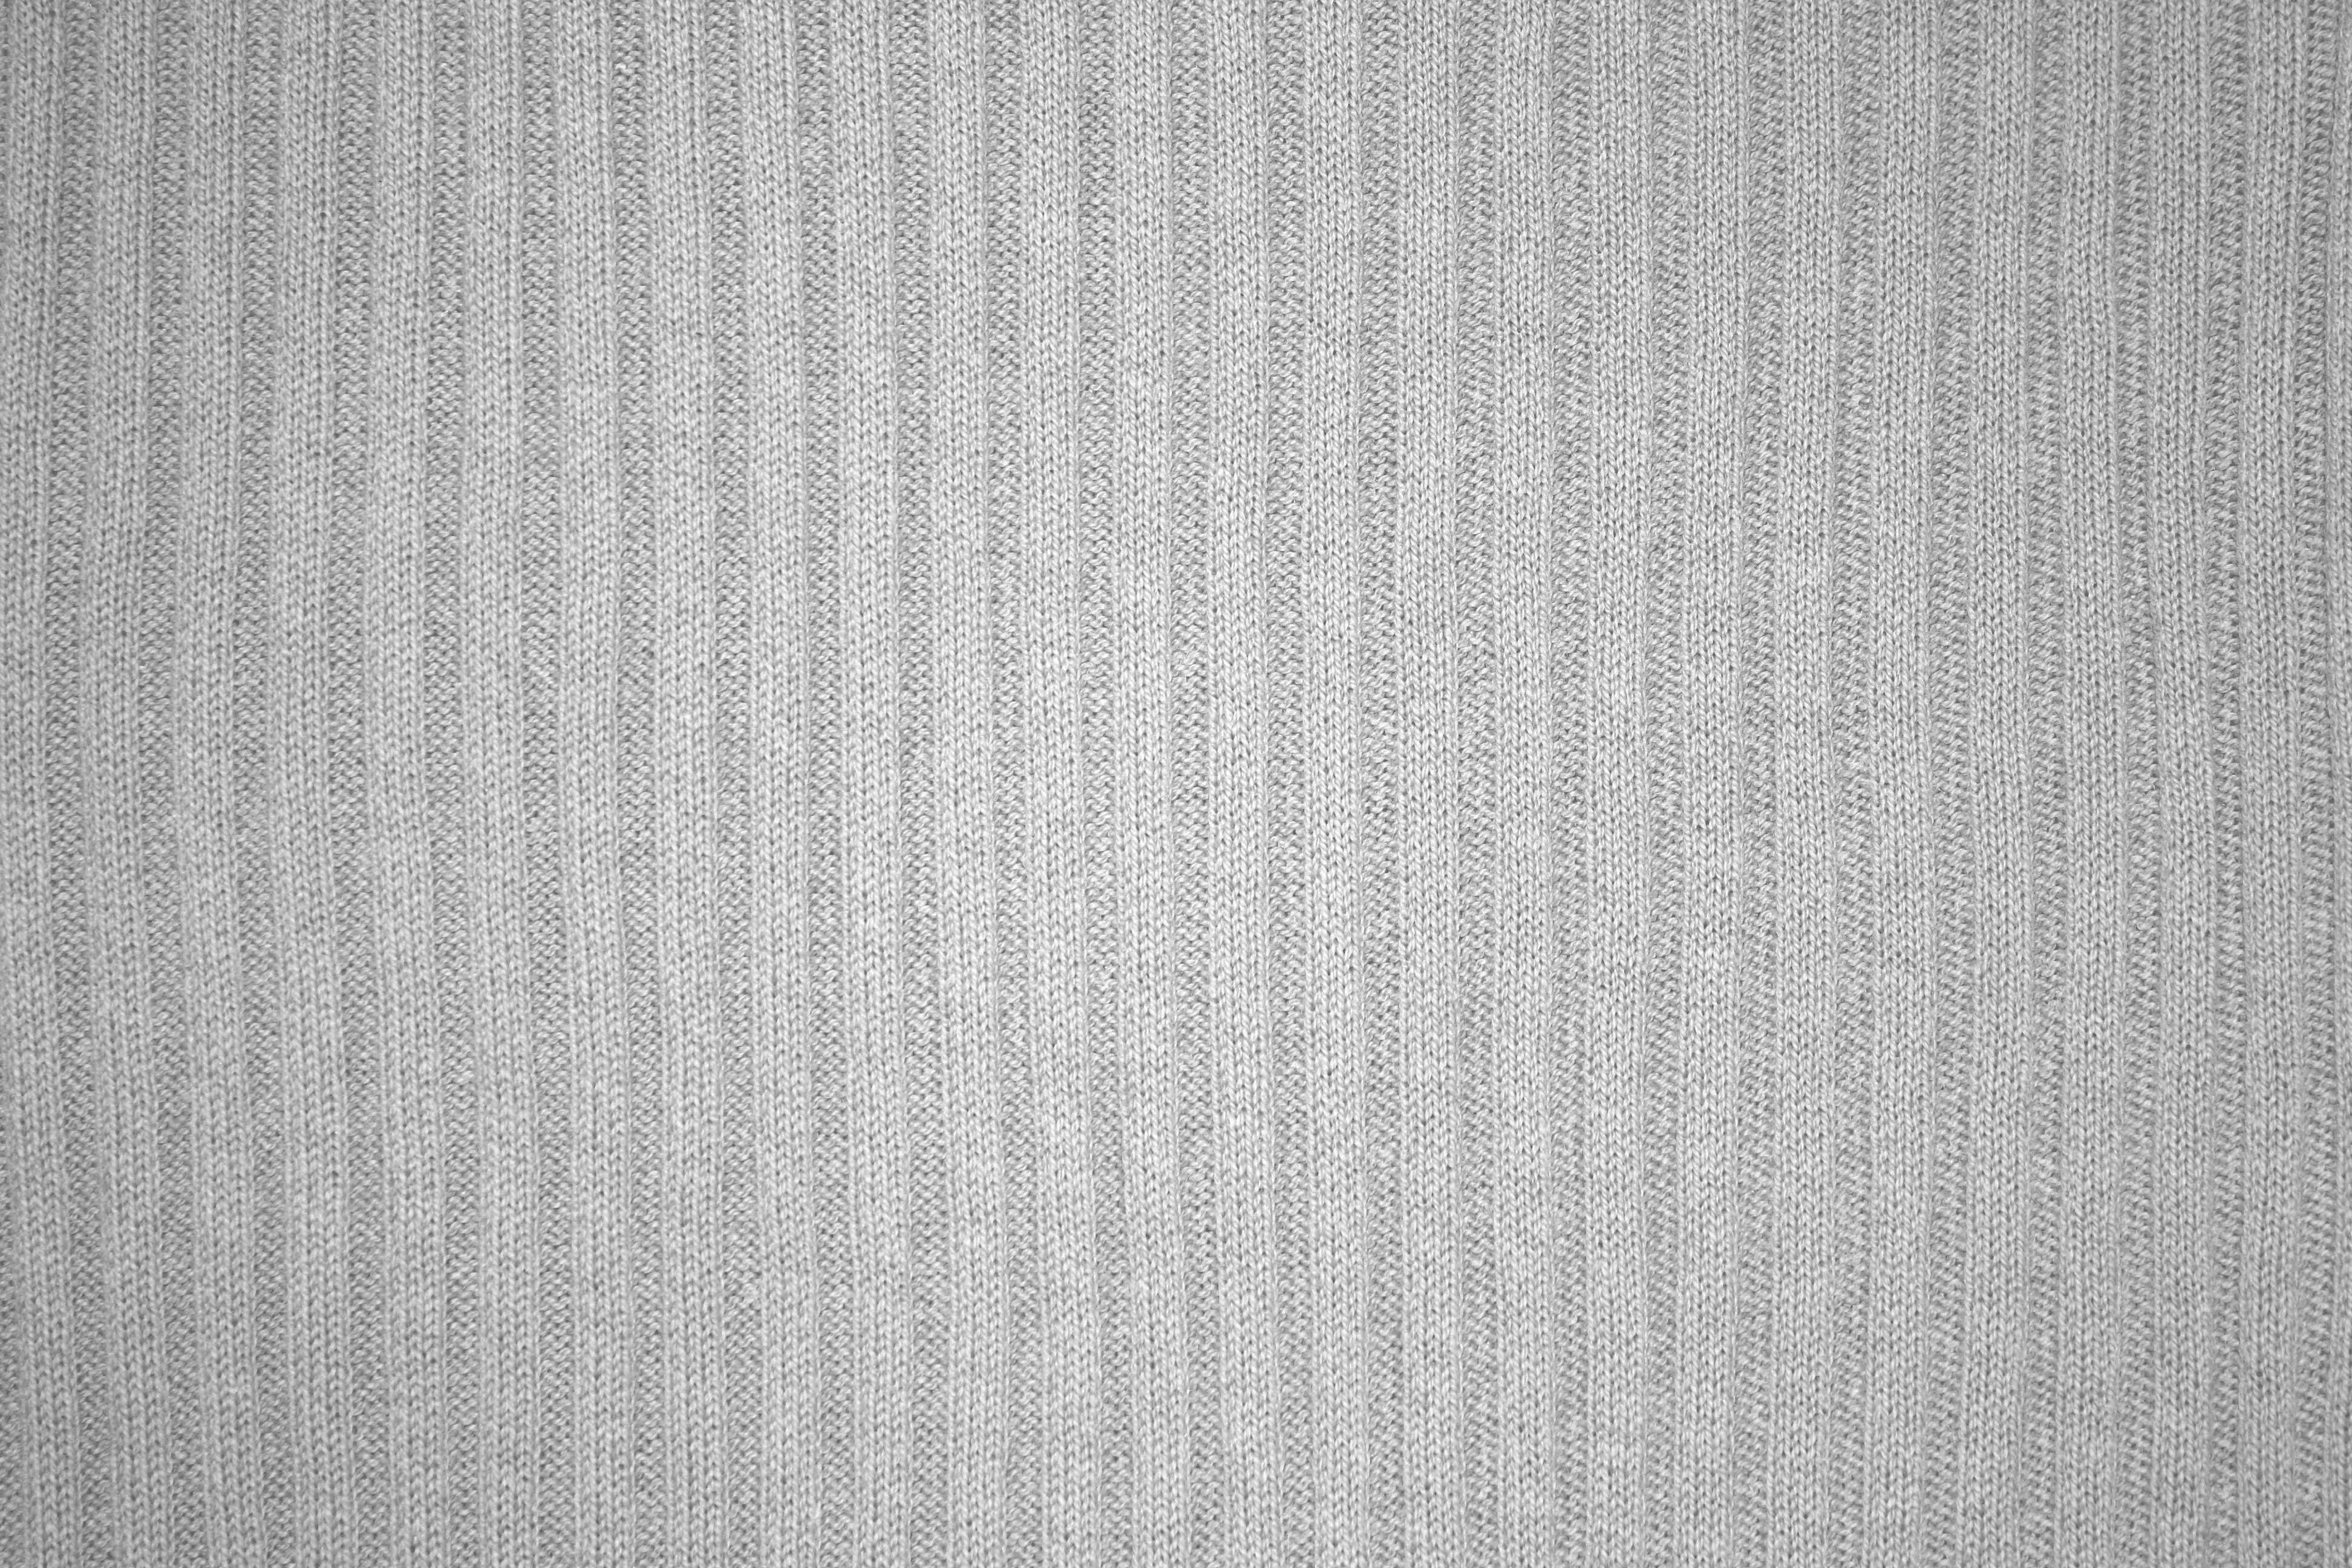 Gray Ribbed Knit Fabric Texture Picture Free Photograph